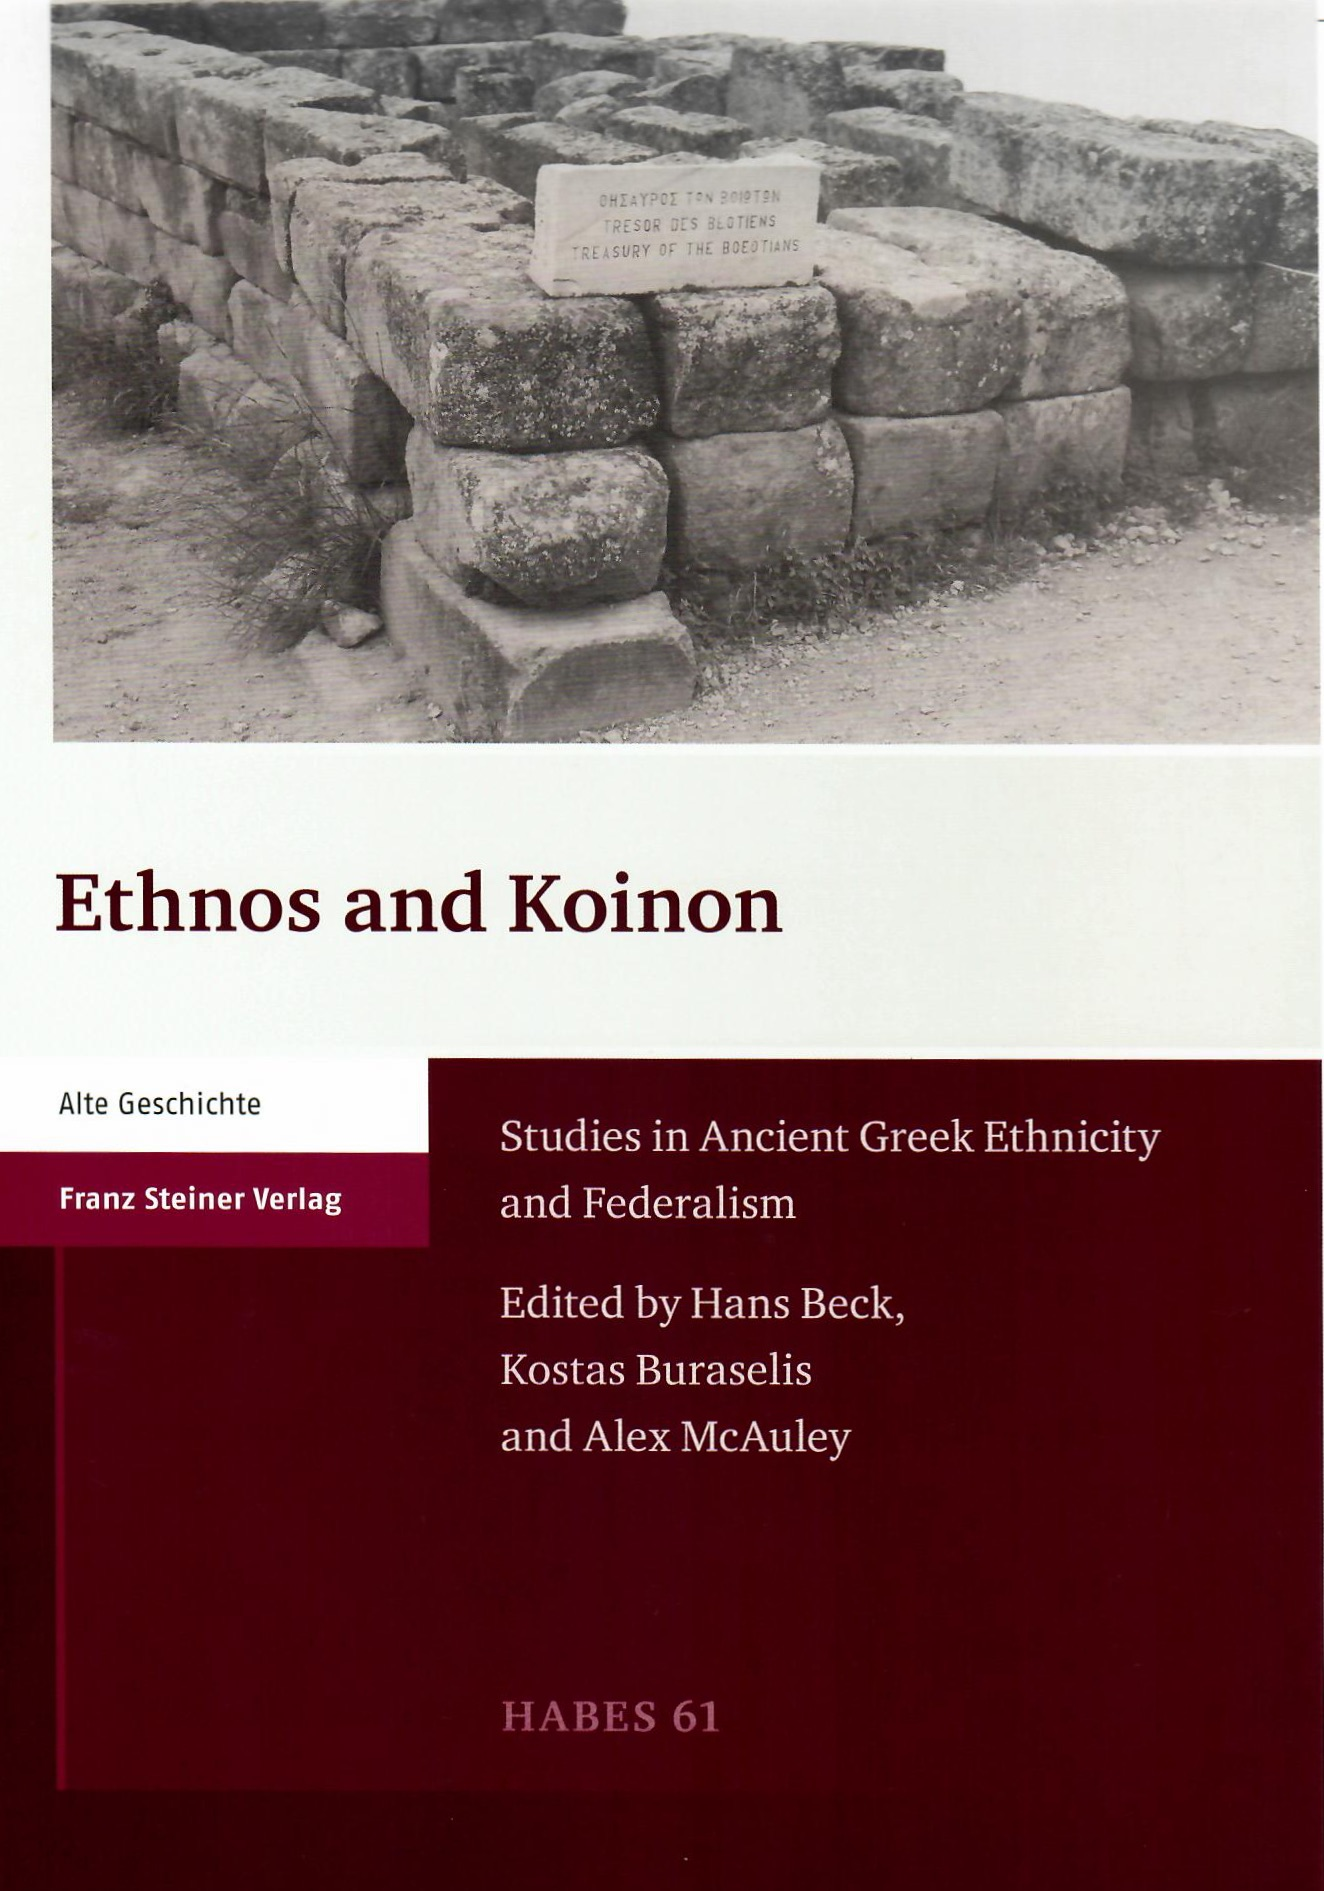 Ethnos and Koinon.jpg